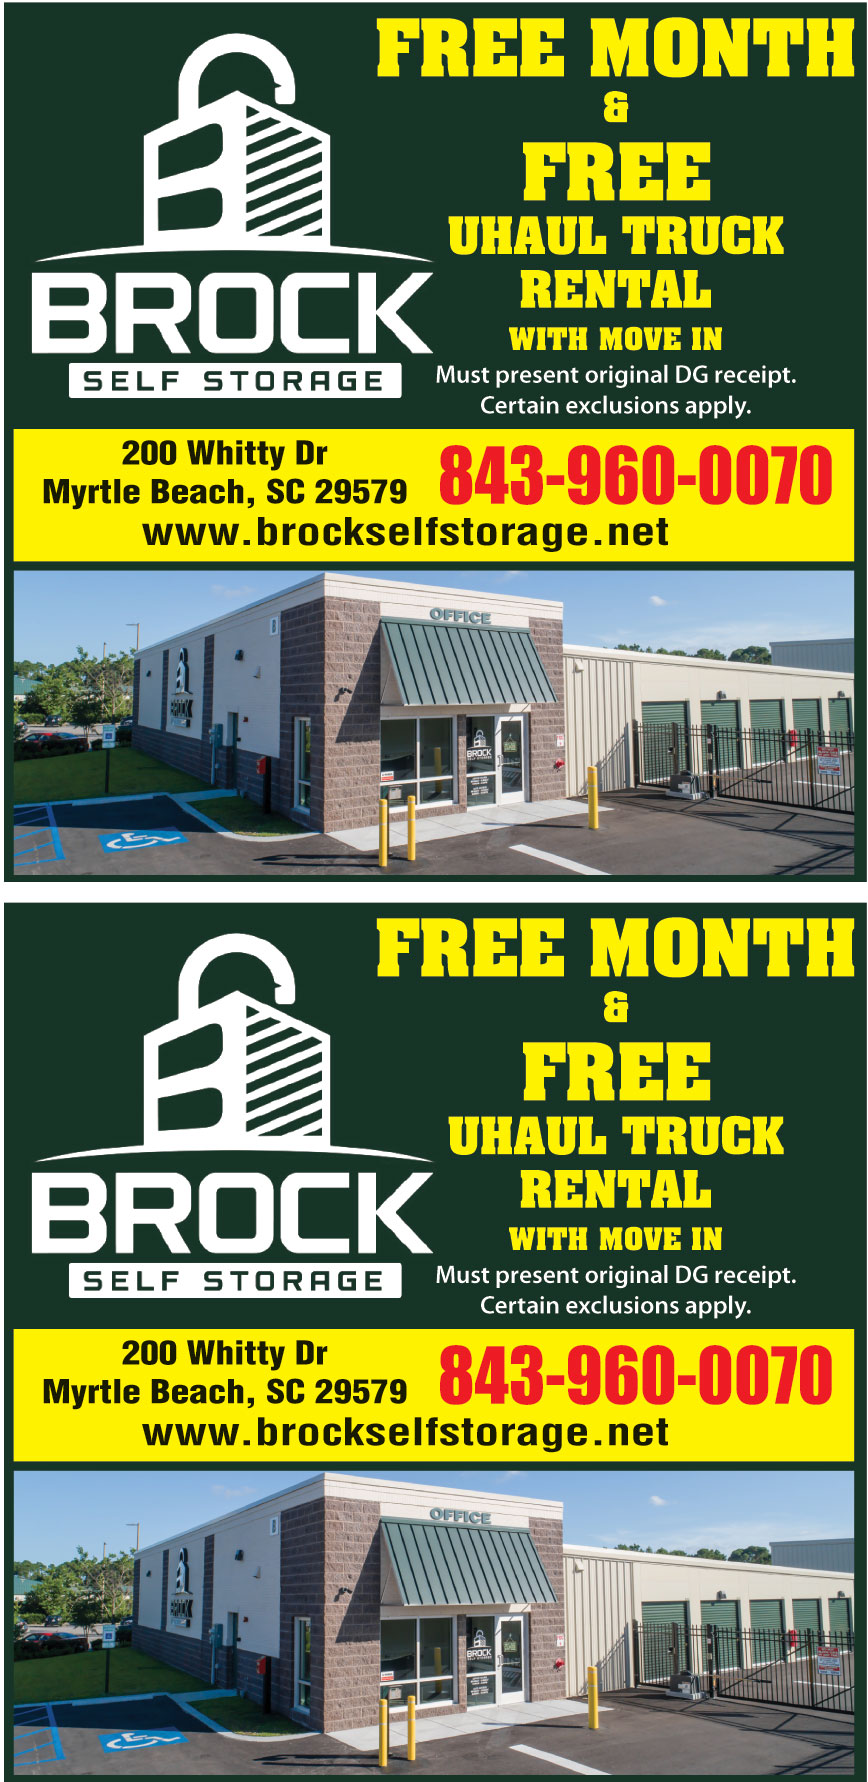 BROCK SELF STORAGE LLC